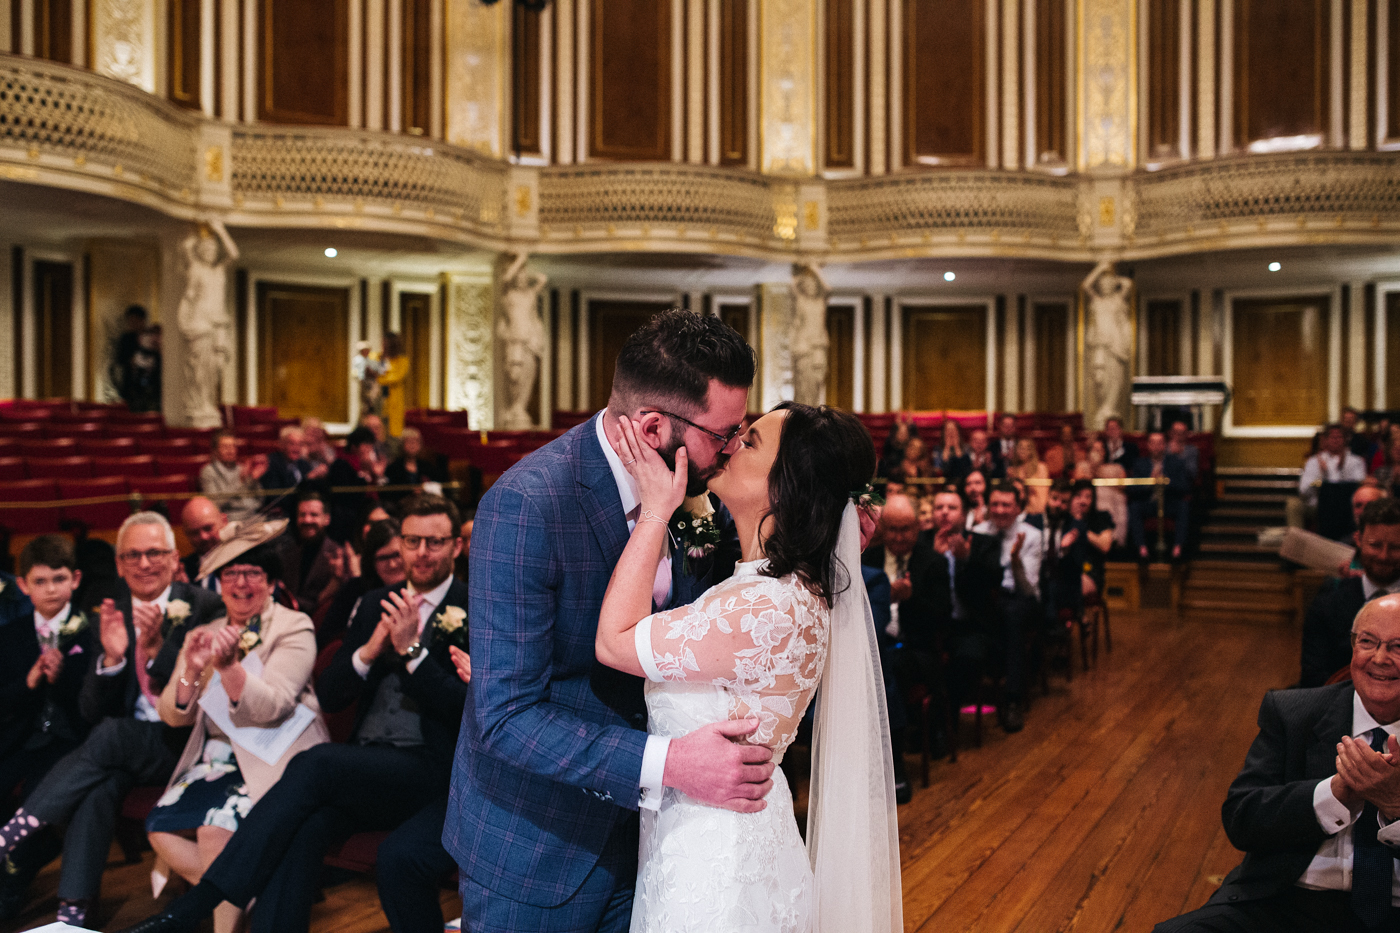 the bride and groom kiss during the ceremony. ceremony at st georges hall liverpool, oh me oh my wedding reception, north west wedding photographer